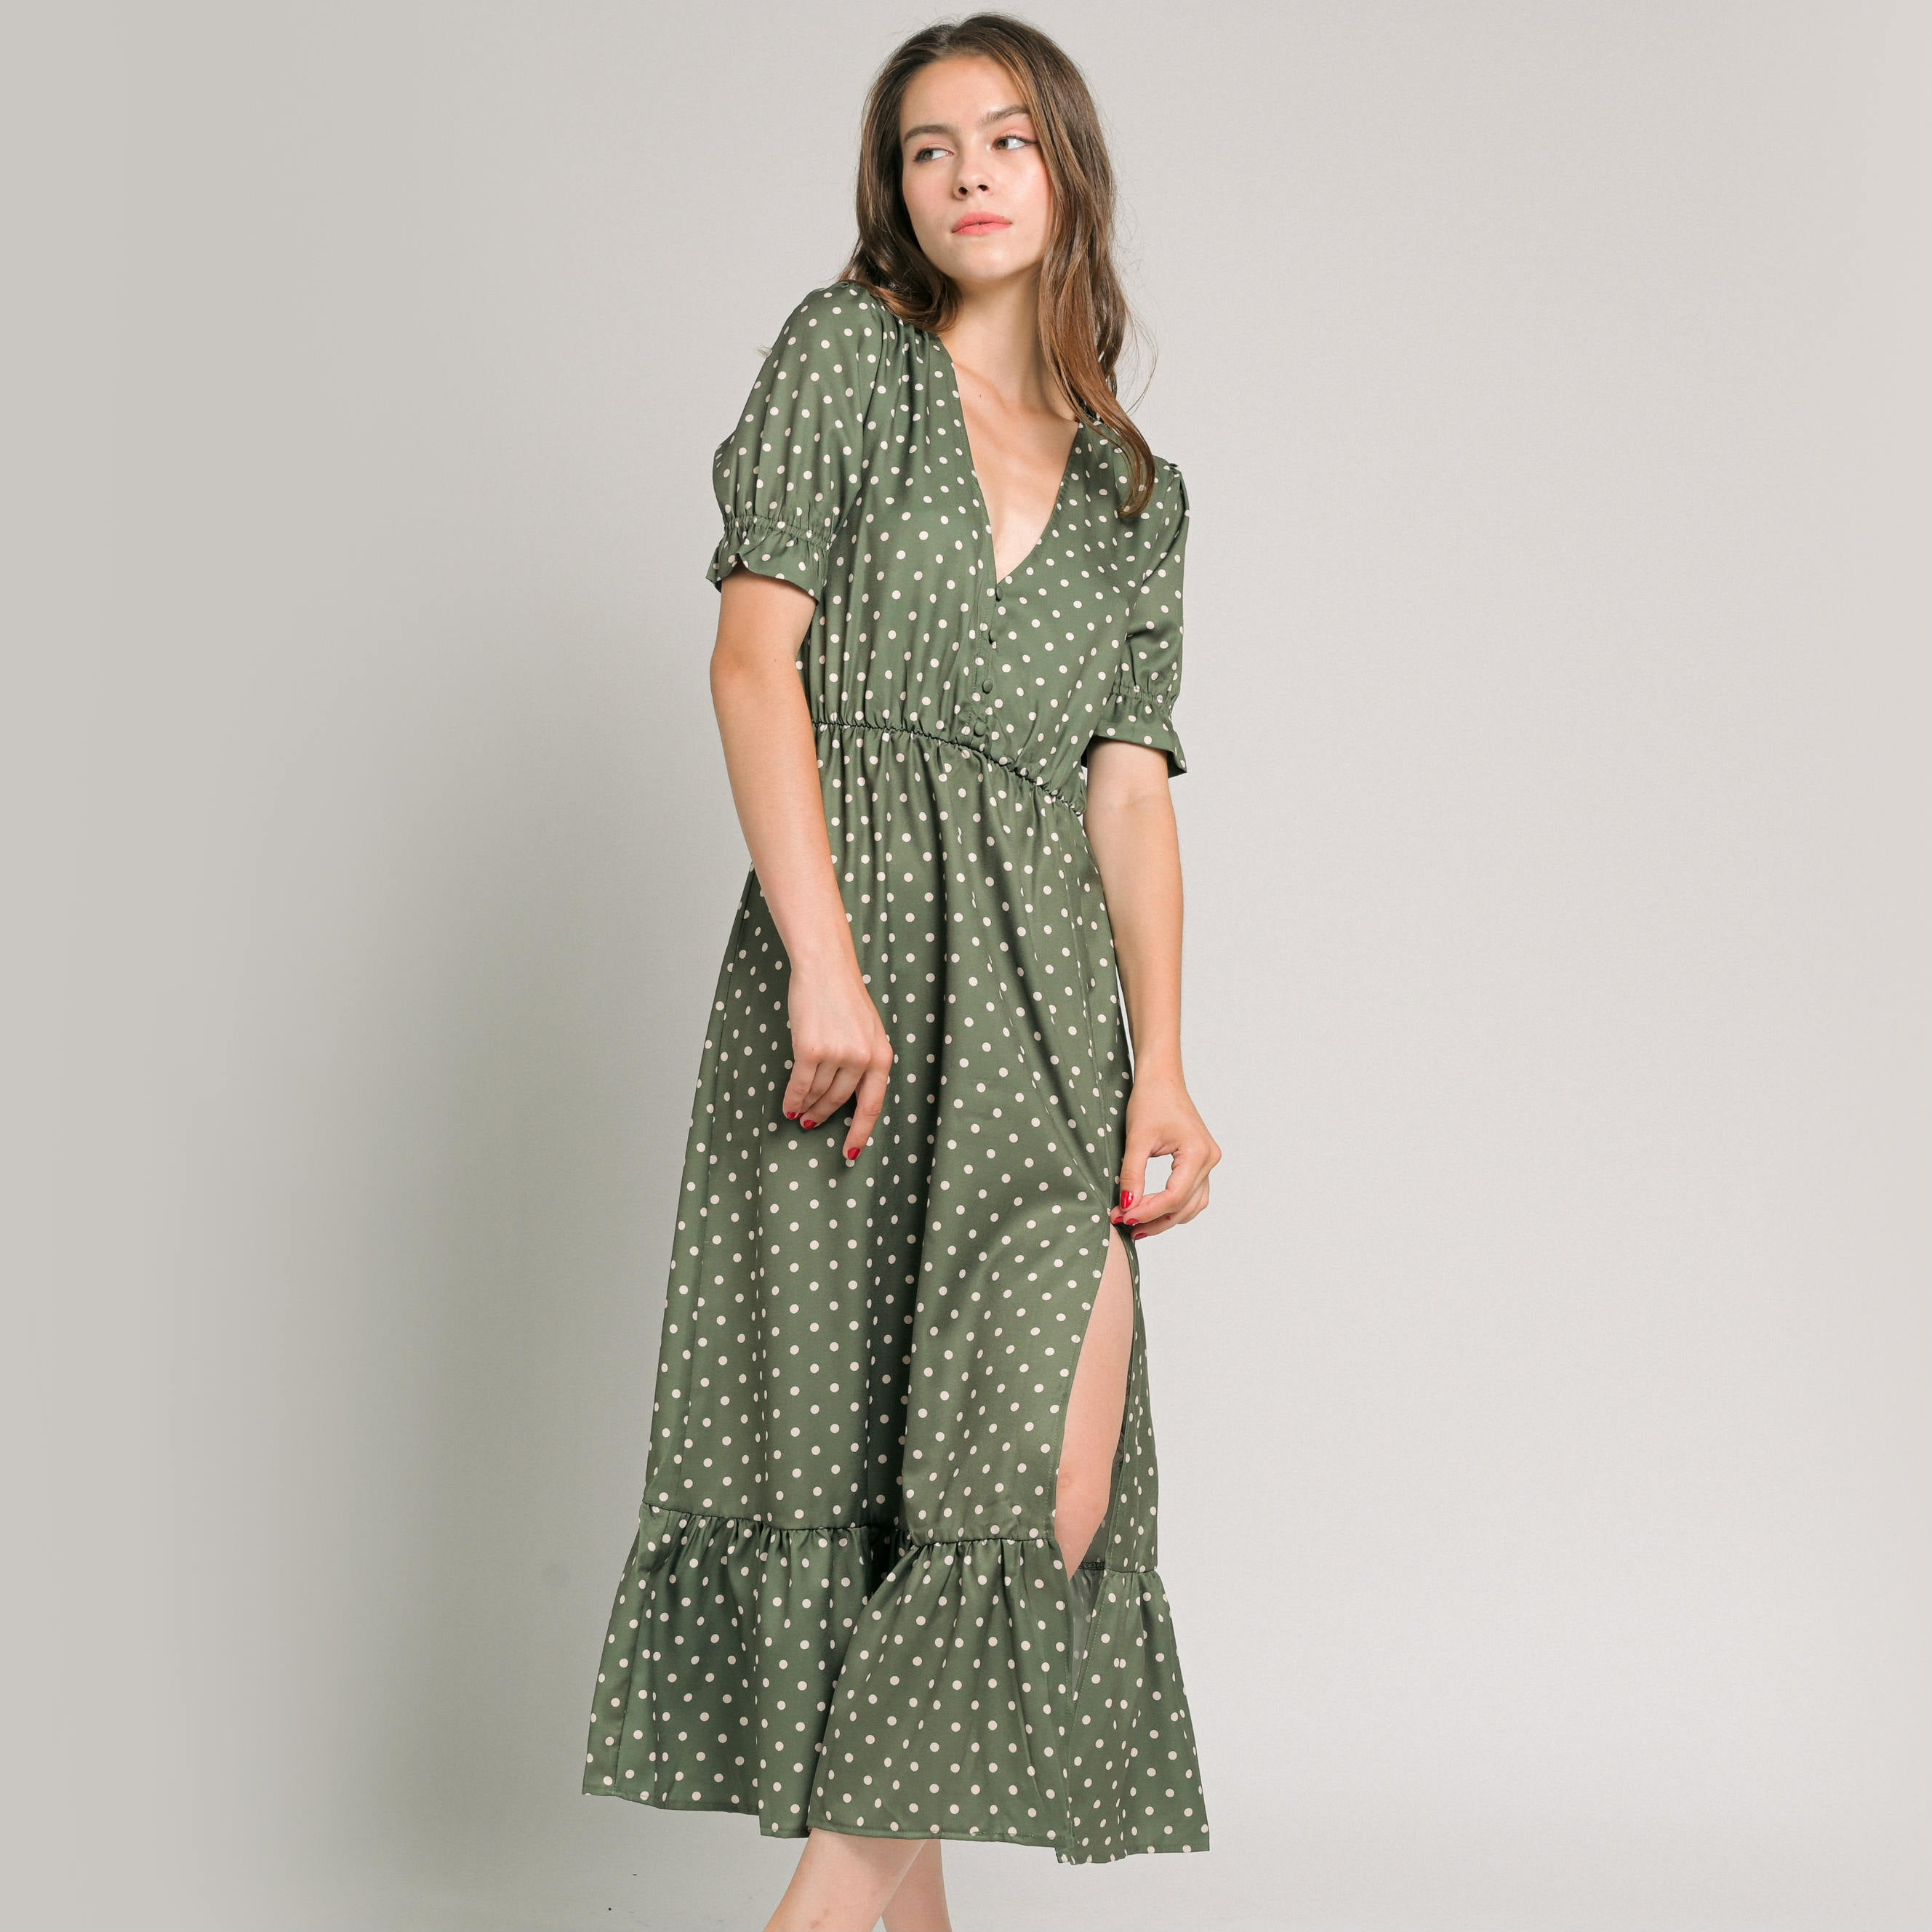 Elly Polka Dress